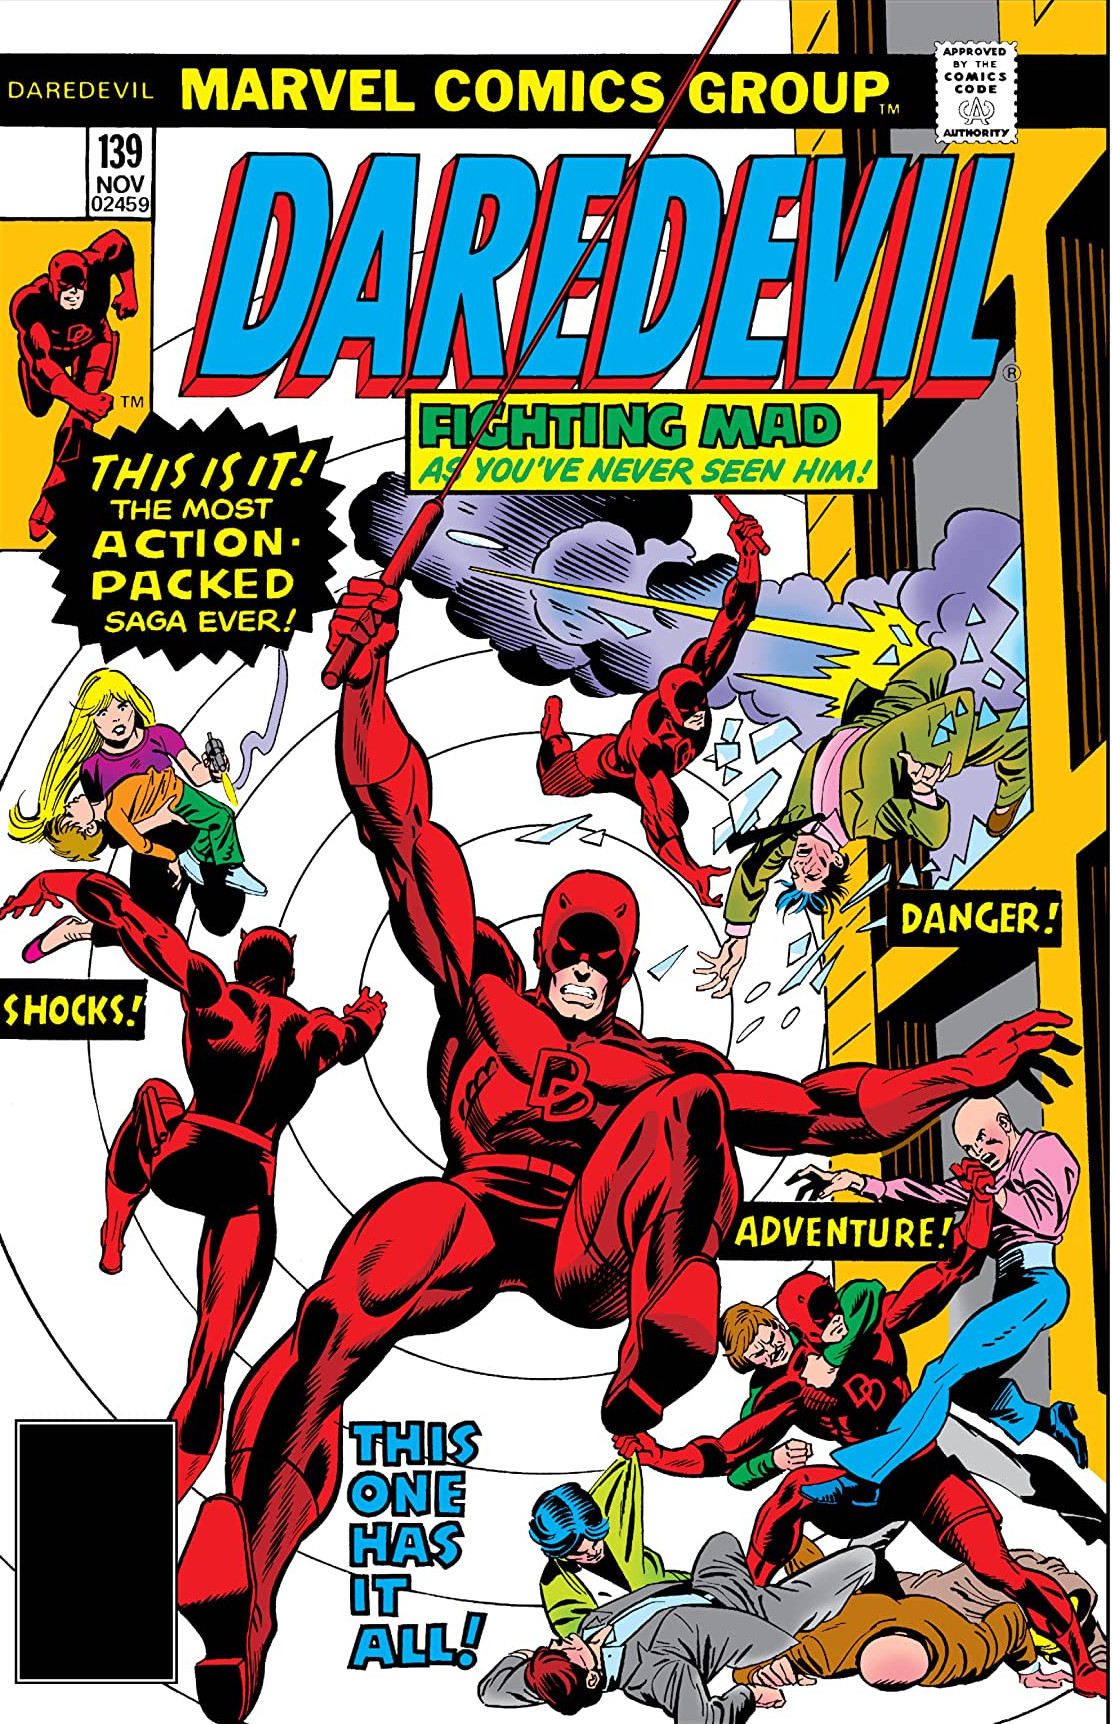 Daredevil Vol 1 139